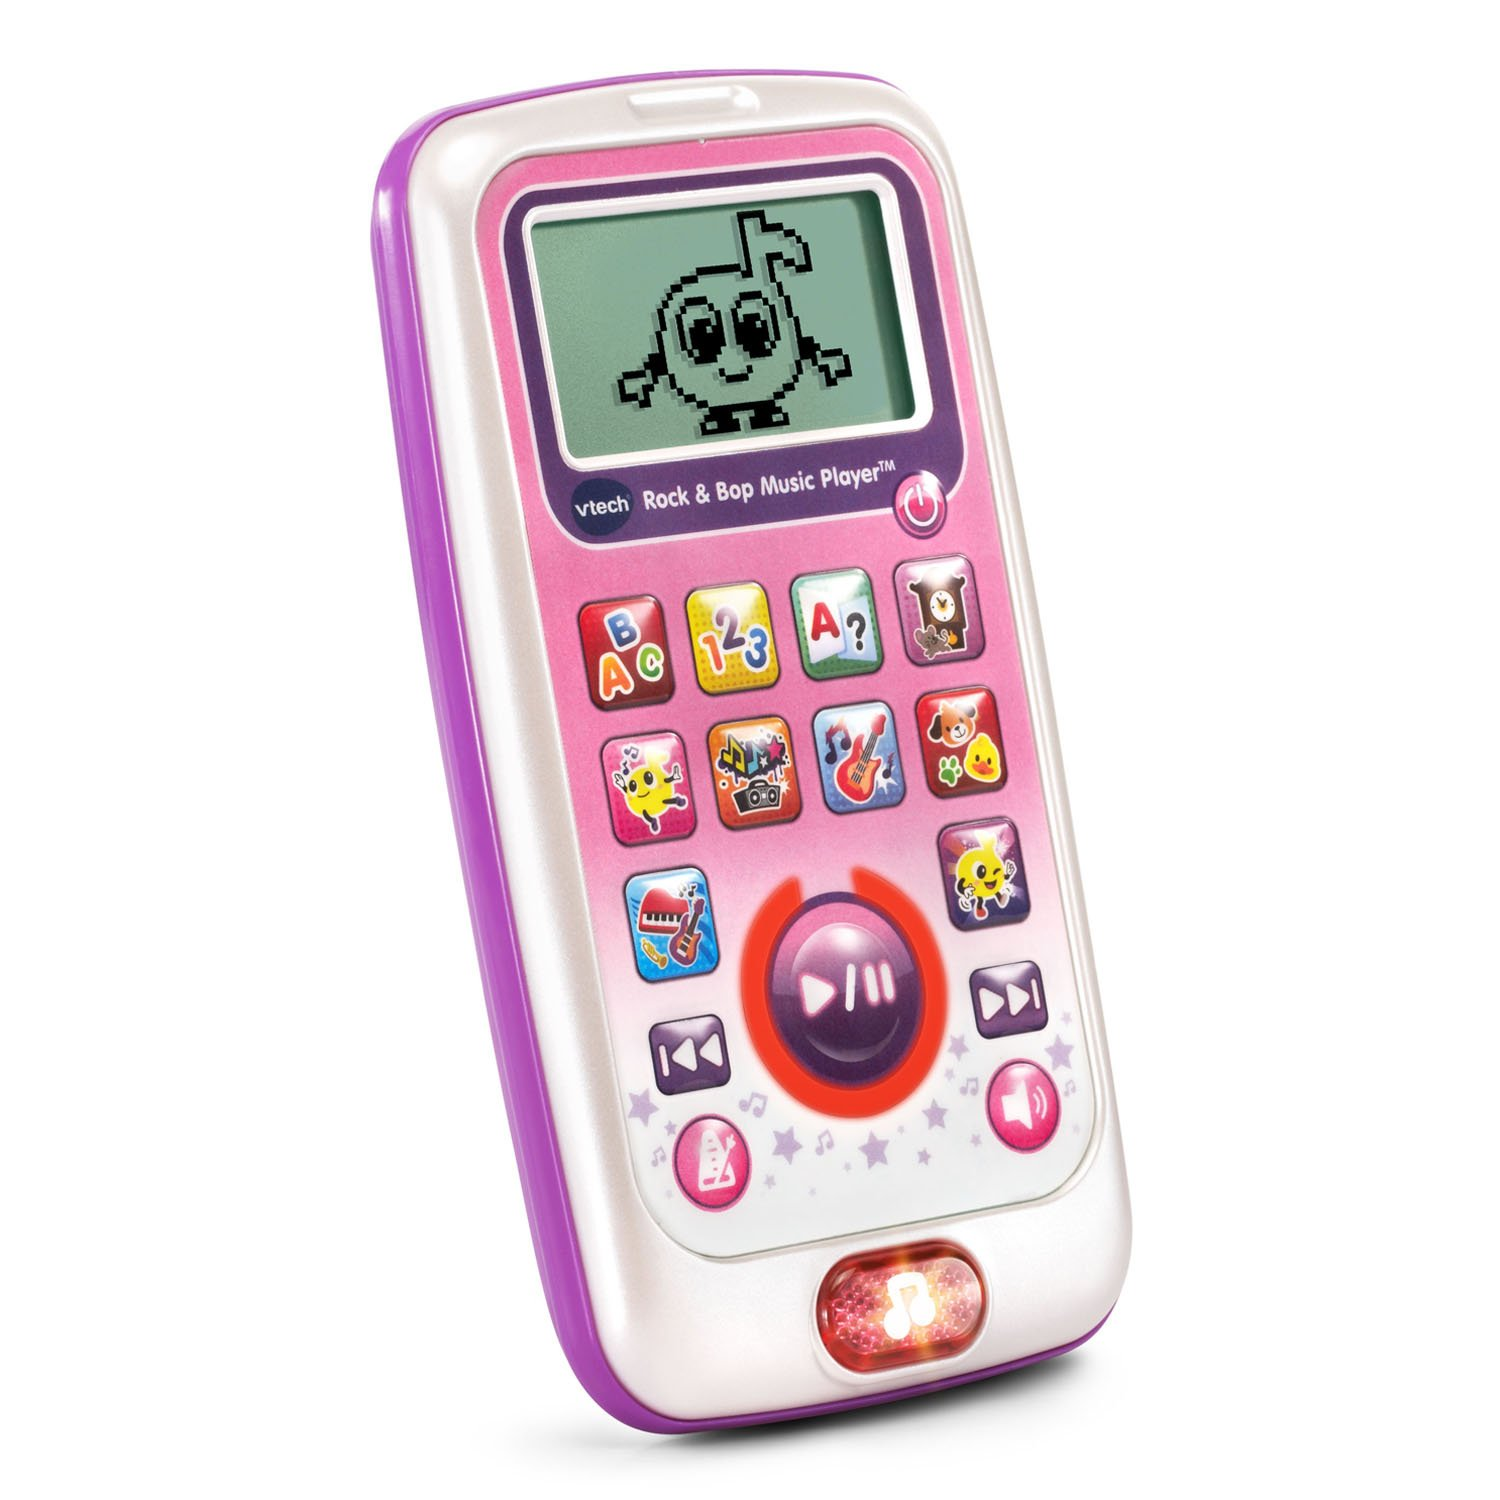 VTech Rock and Bop Music Player Amazon Exclusive, Pink by VTech (Image #2)